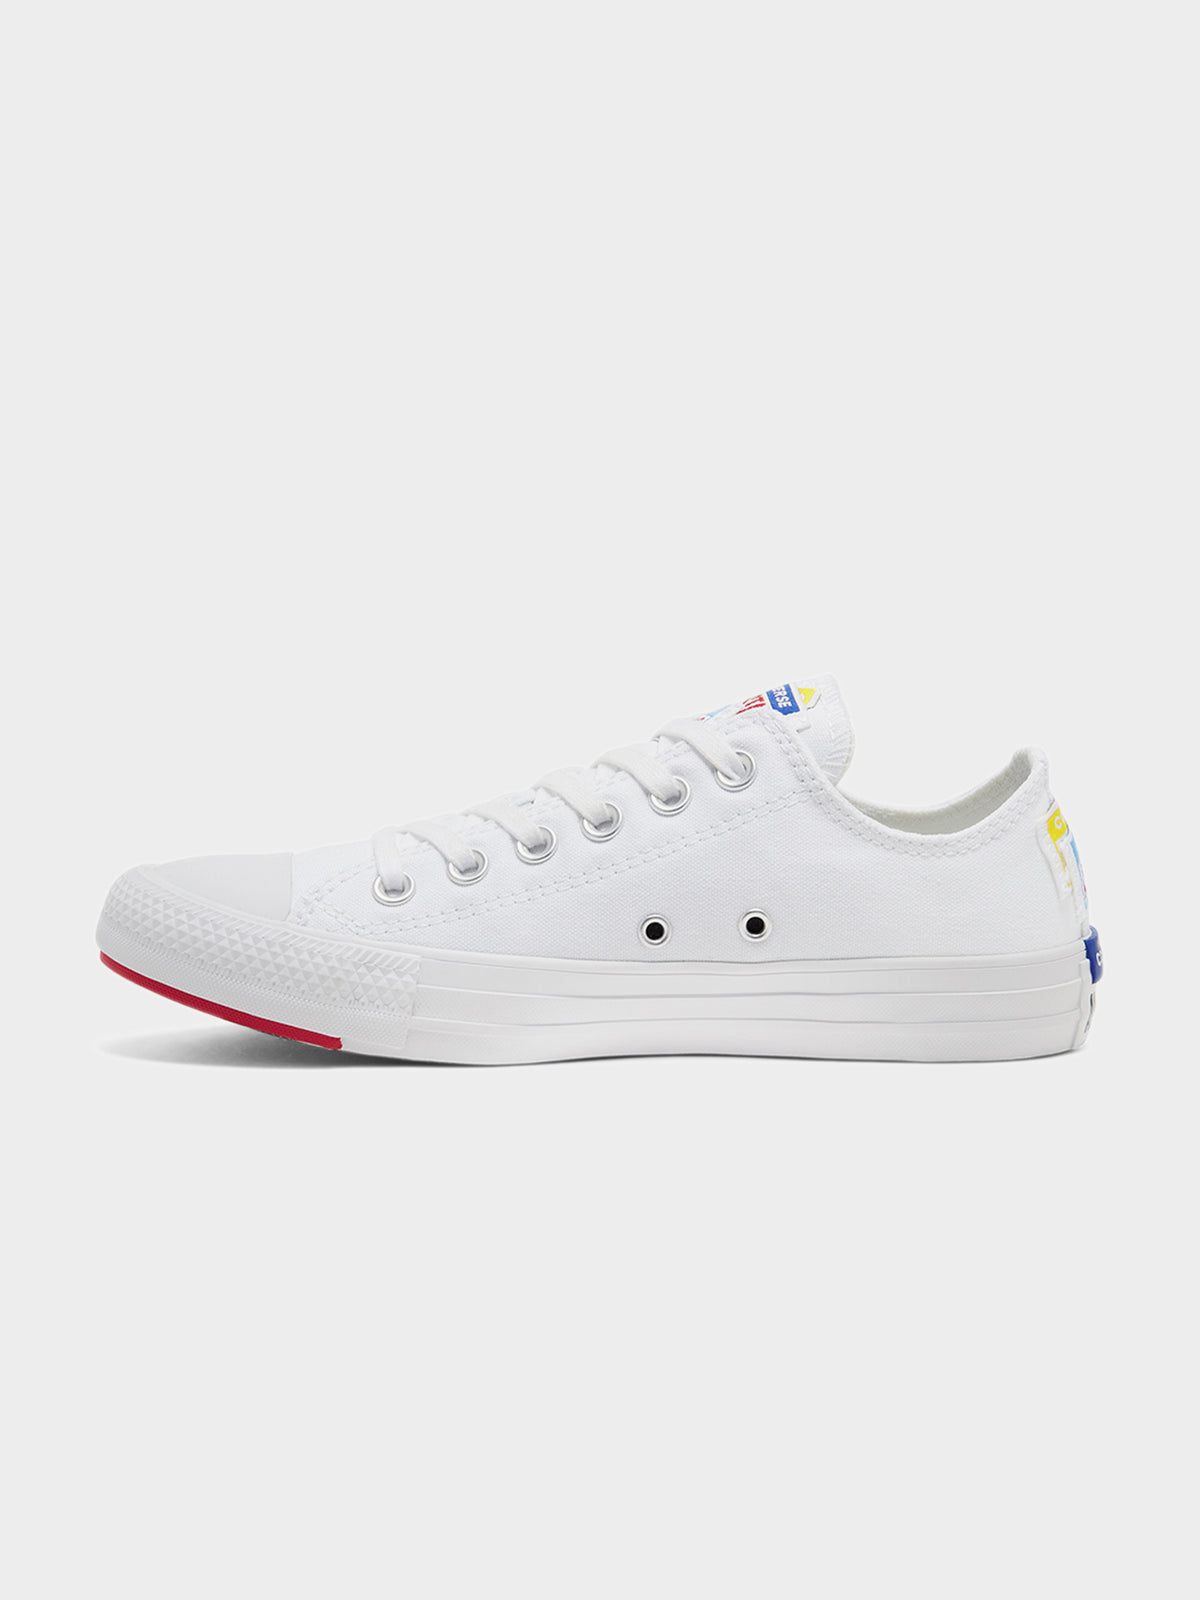 Unisex Chuck Taylor All Star Stacked Logo Low Top Sneakers in White